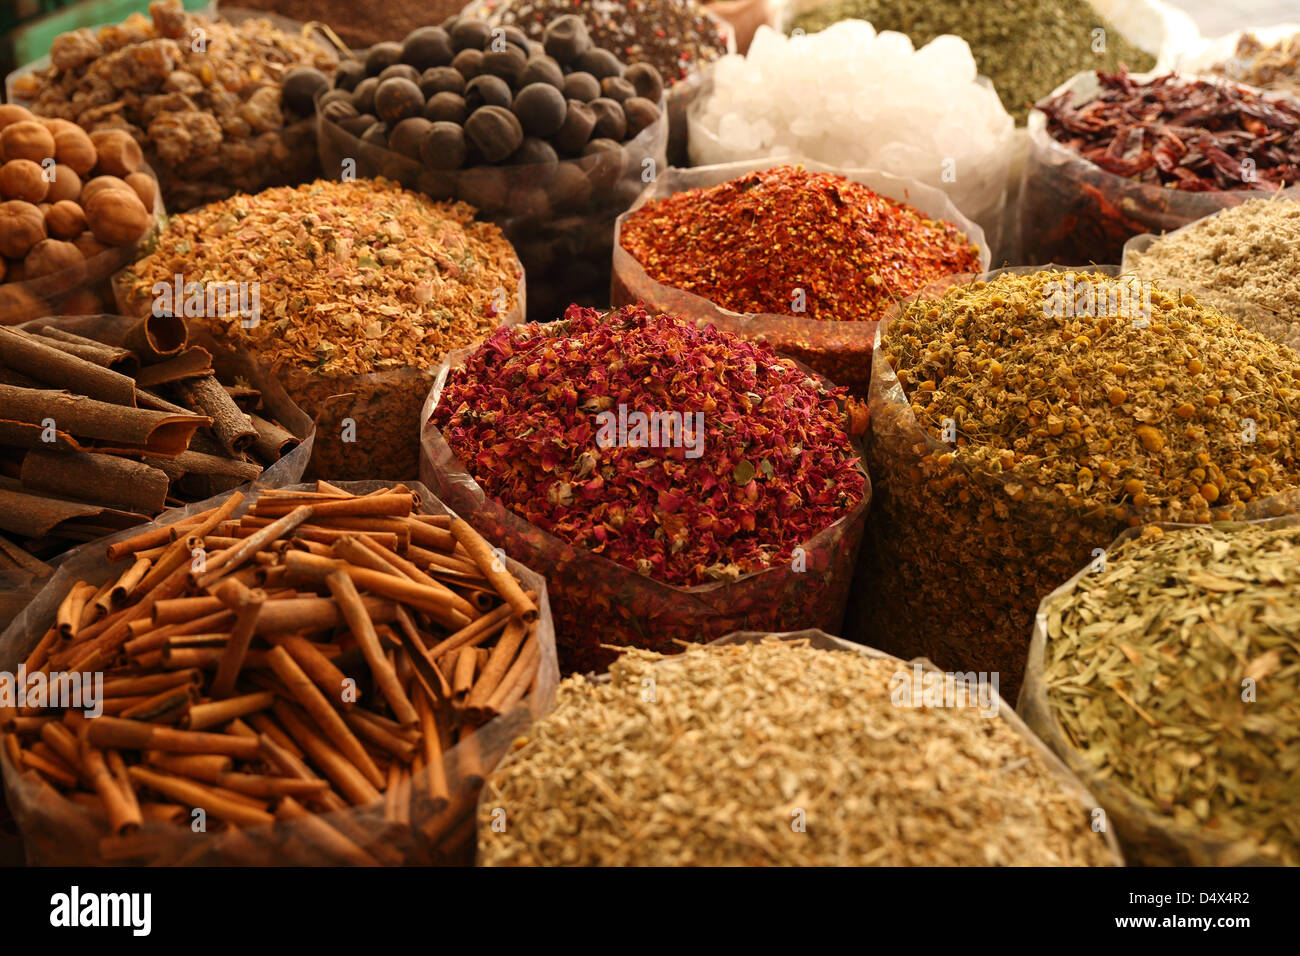 Bags of colorful spices at souk market in Dubai, United Arab Emirates - Stock Image